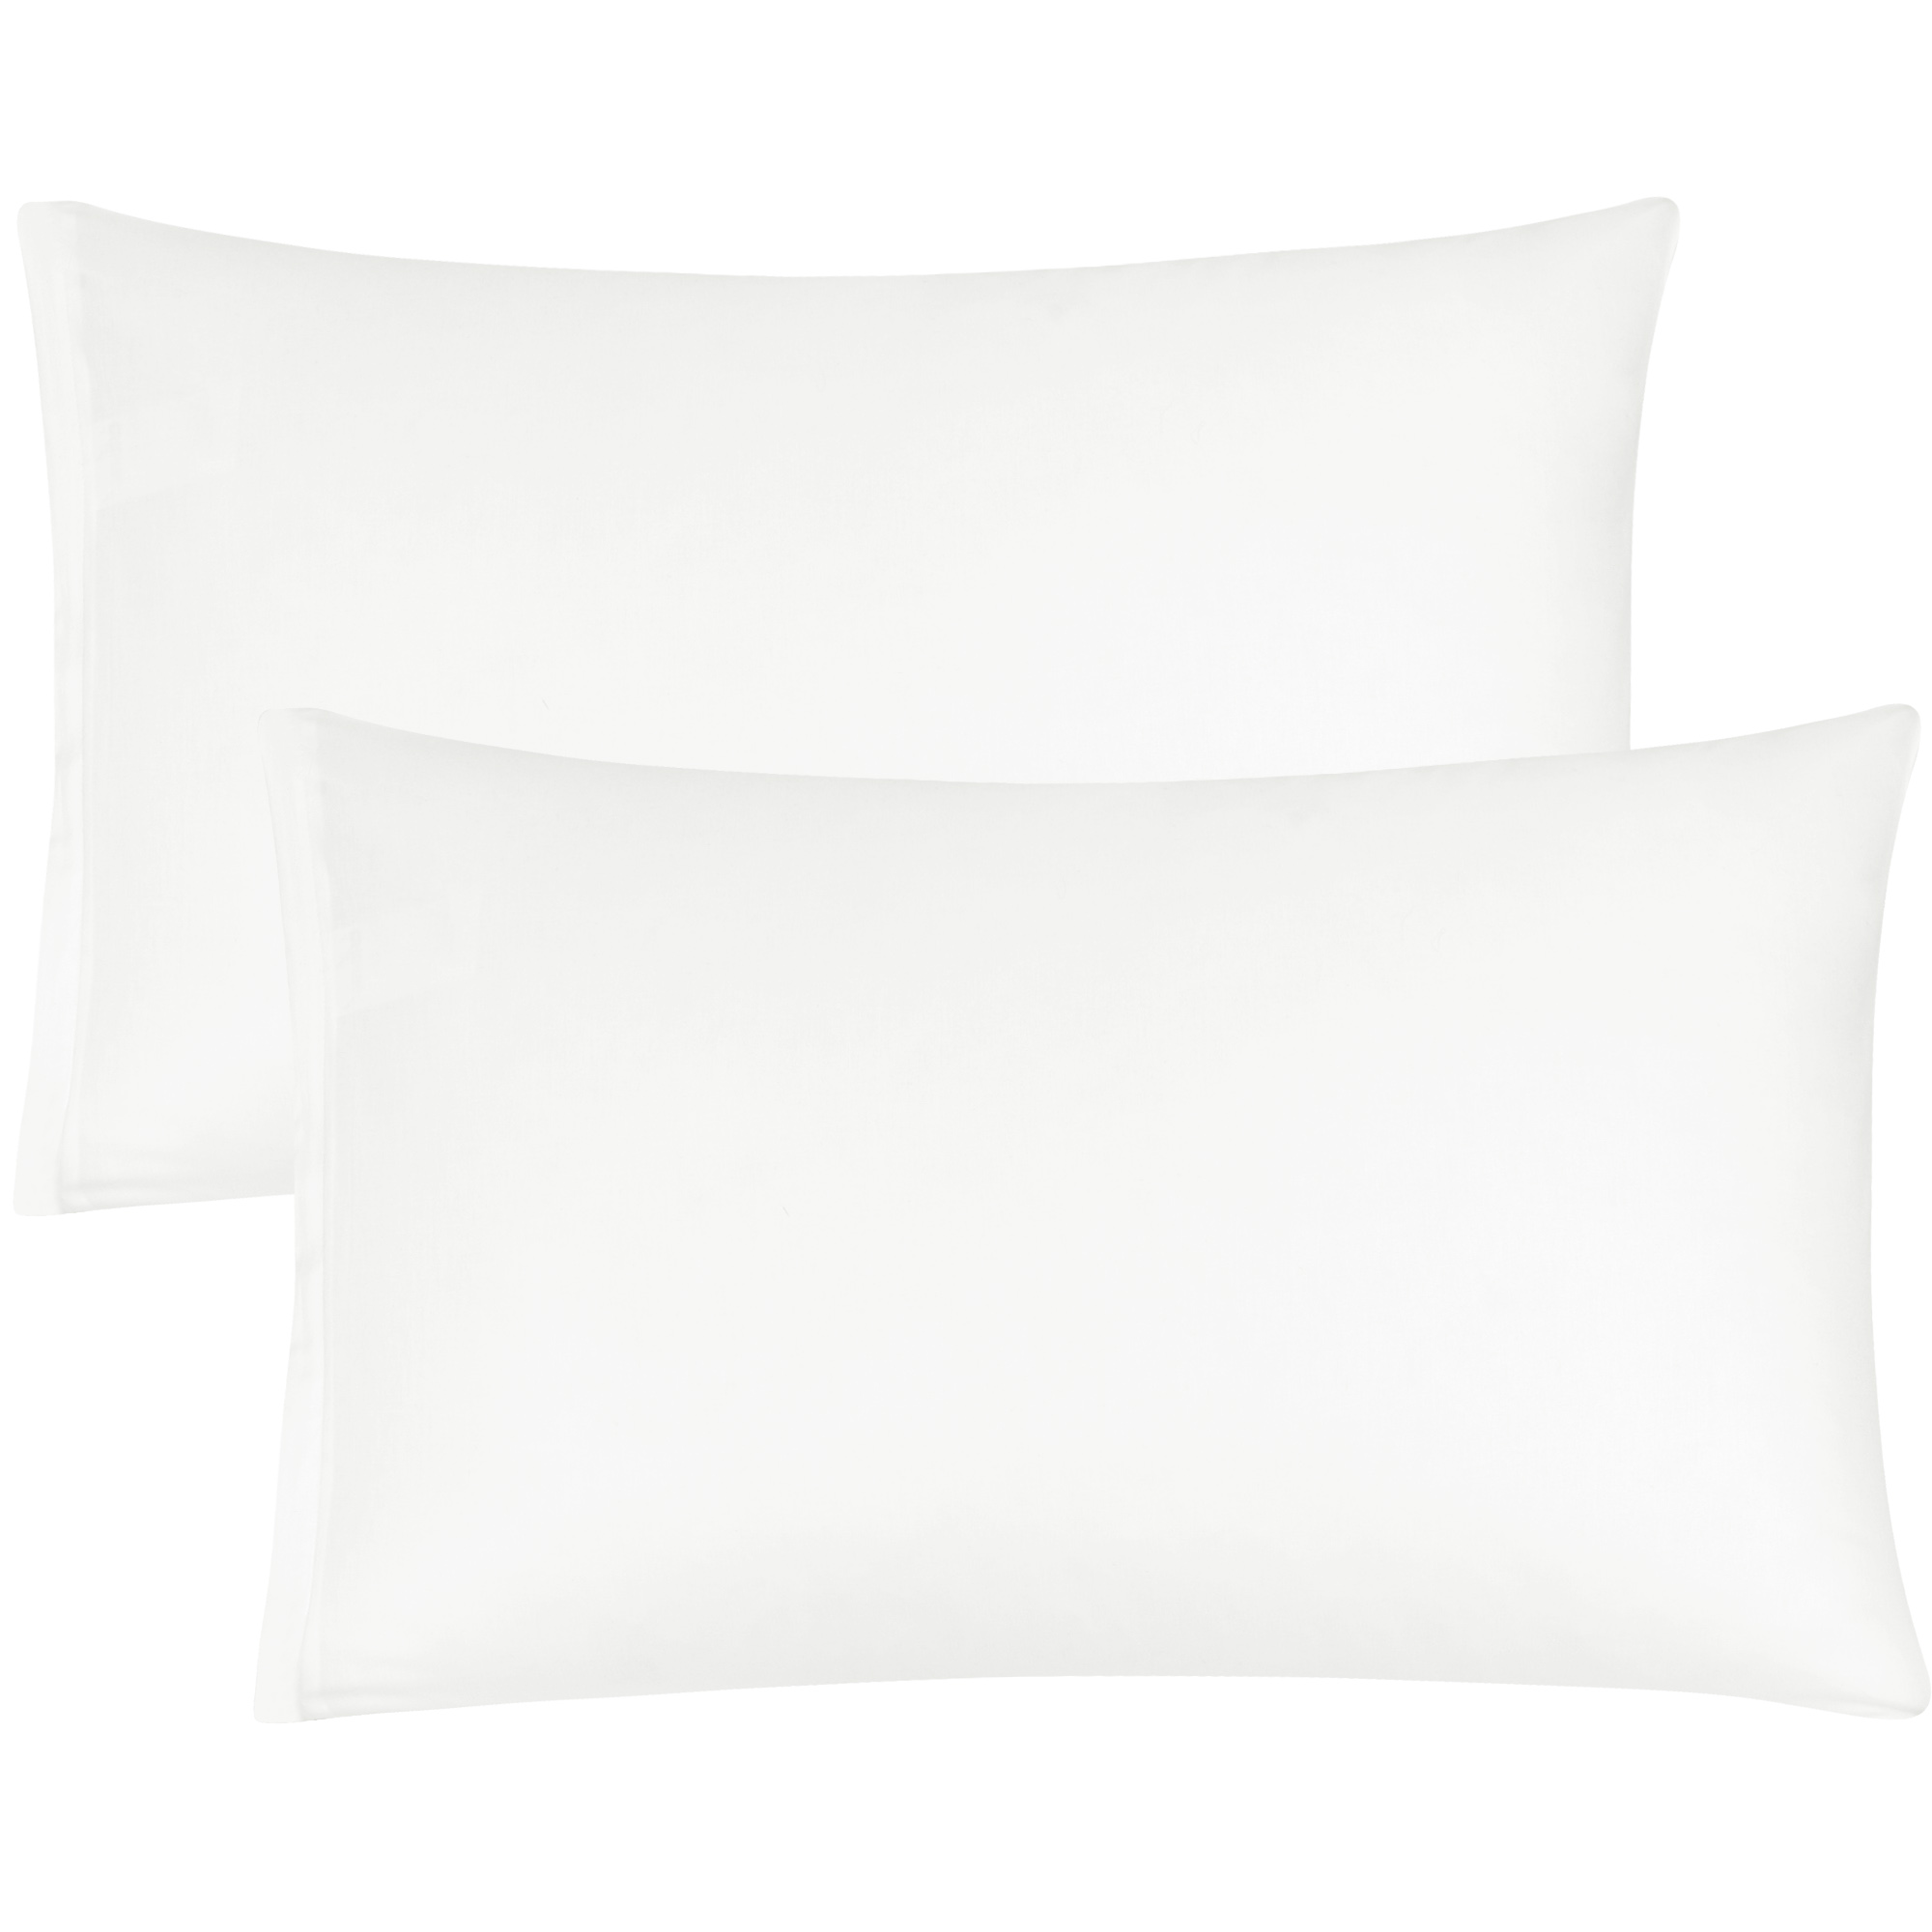 Zippered Cases Pillowcases Covers Egyptian Cotton 2-Pack (20 x 36 Inch, White)